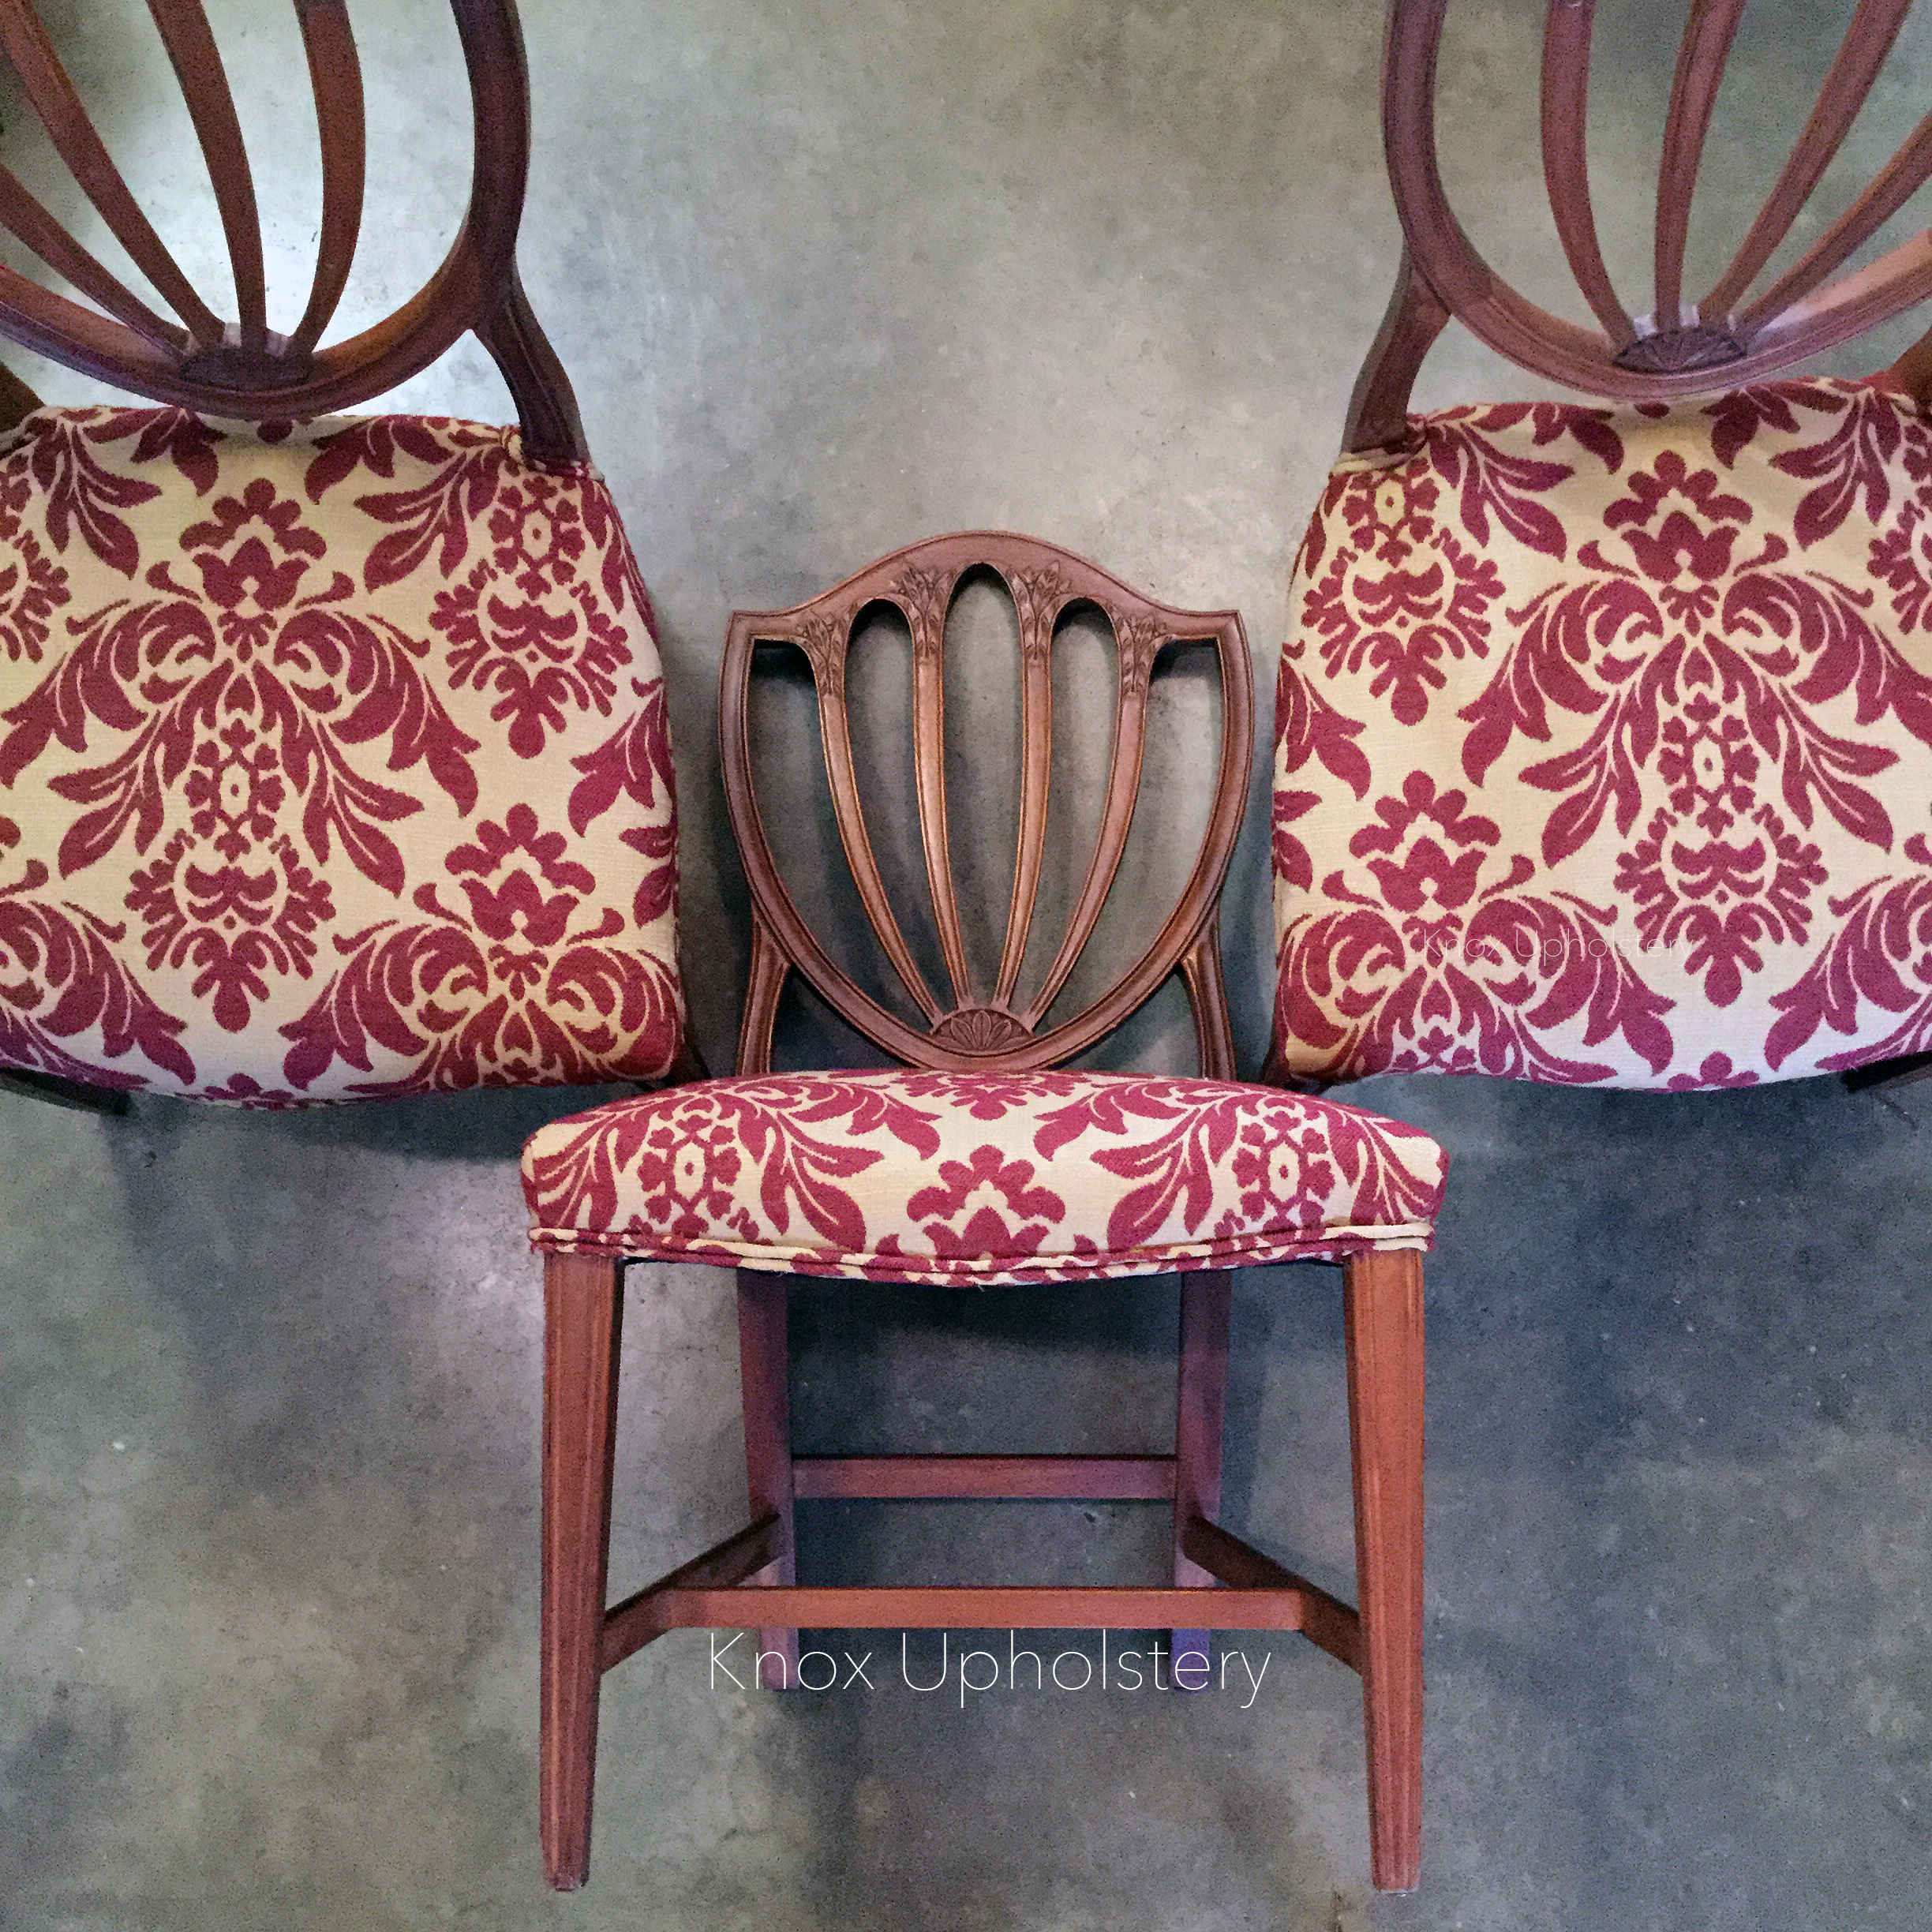 Hepplewhite chairs upholstered by Rachel Fletcher of Knox Upholstery, Knoxville, Tennessee